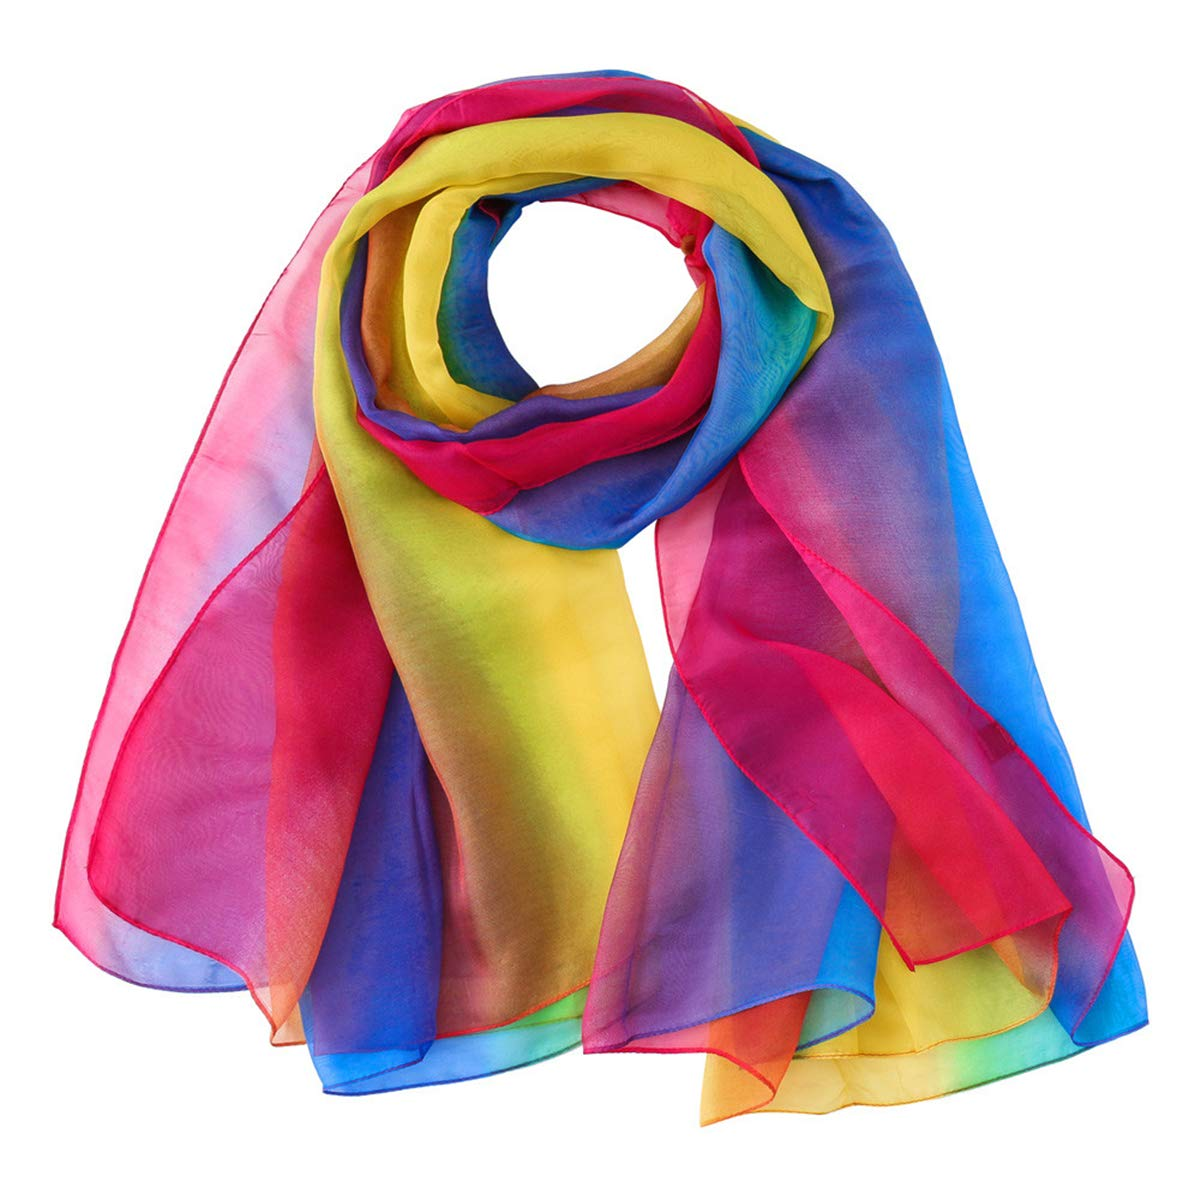 51429189eb5 Rosennie Womens Scarves,Women Fashion Autumn Winter Chiffon Rainbow ...